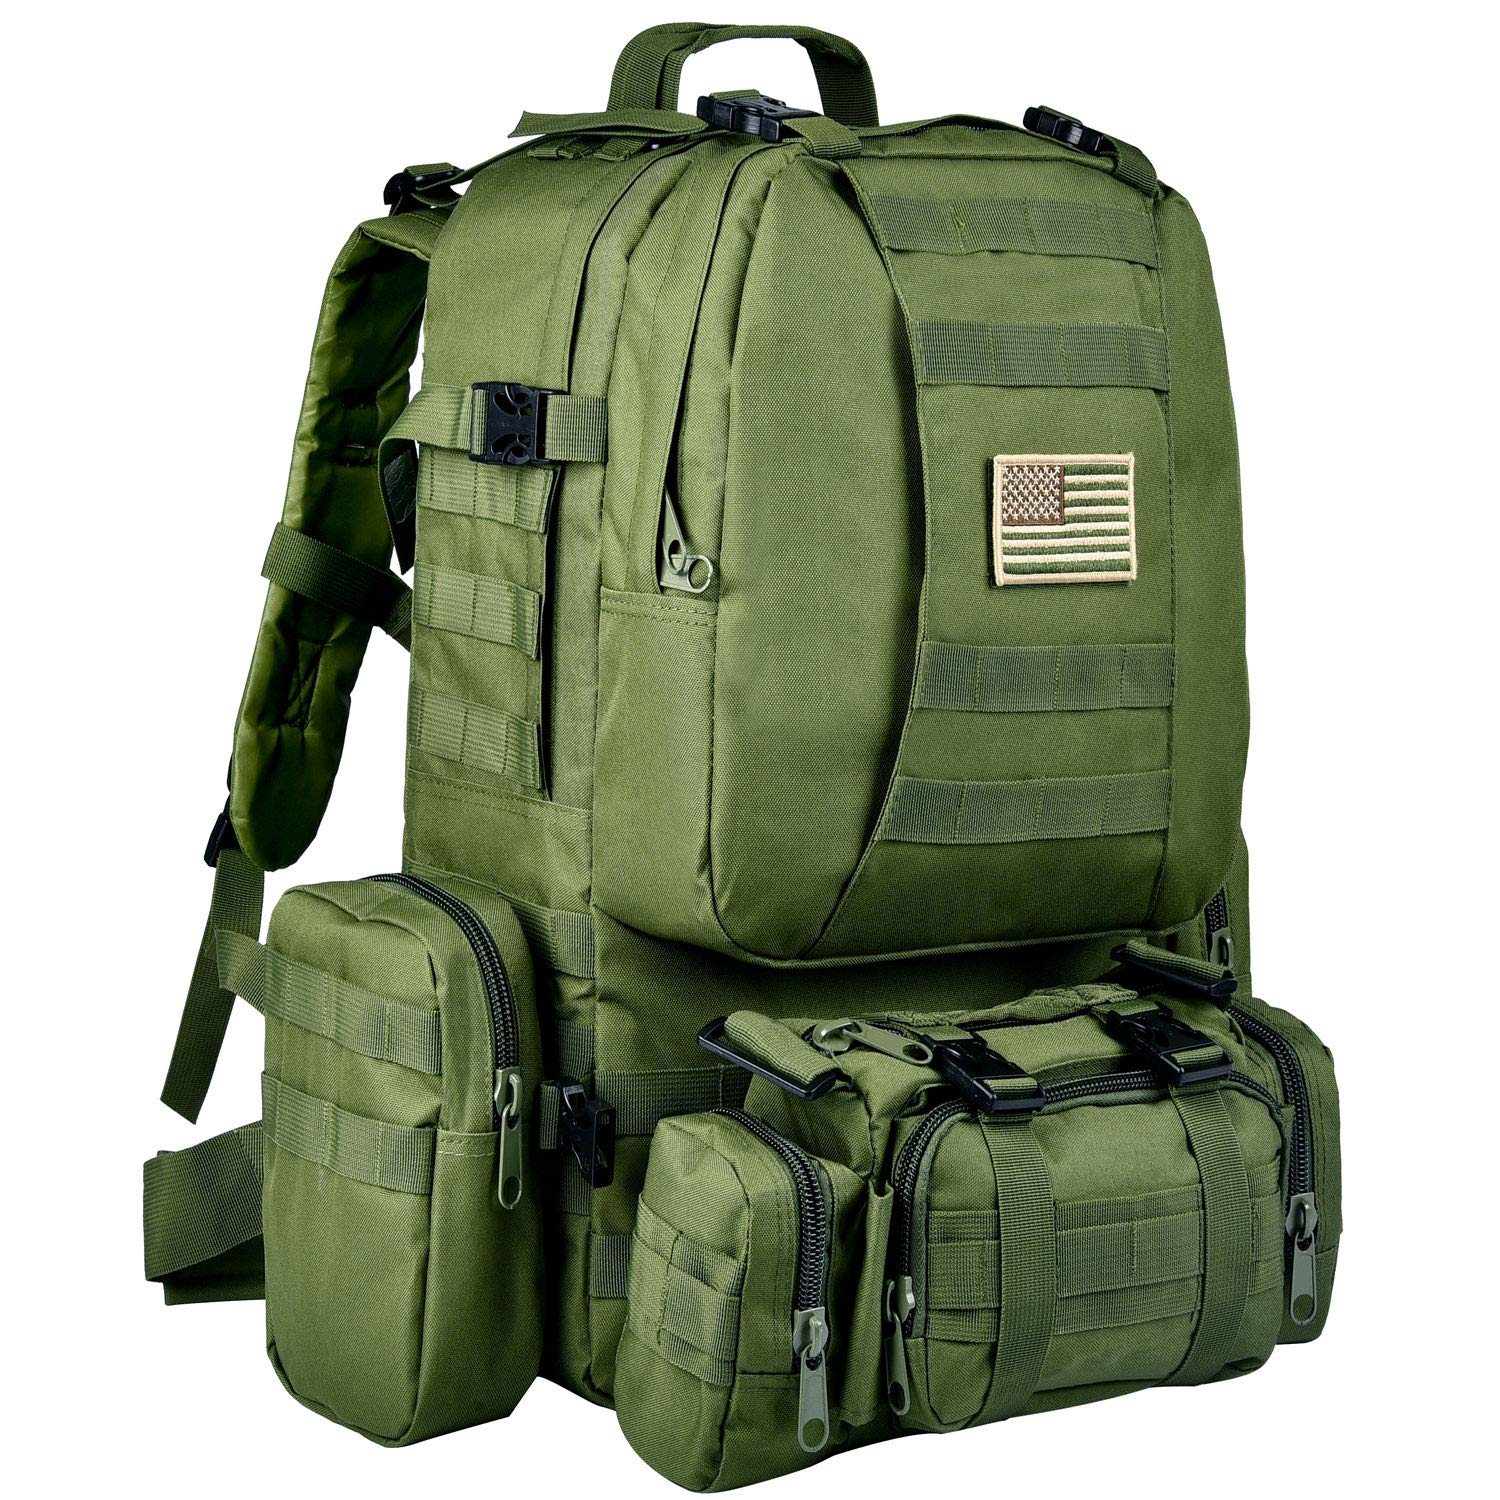 CVLIFE Military Tactical Backpack Built-up Army Rucksack Survival Assault Green by CVLIFE